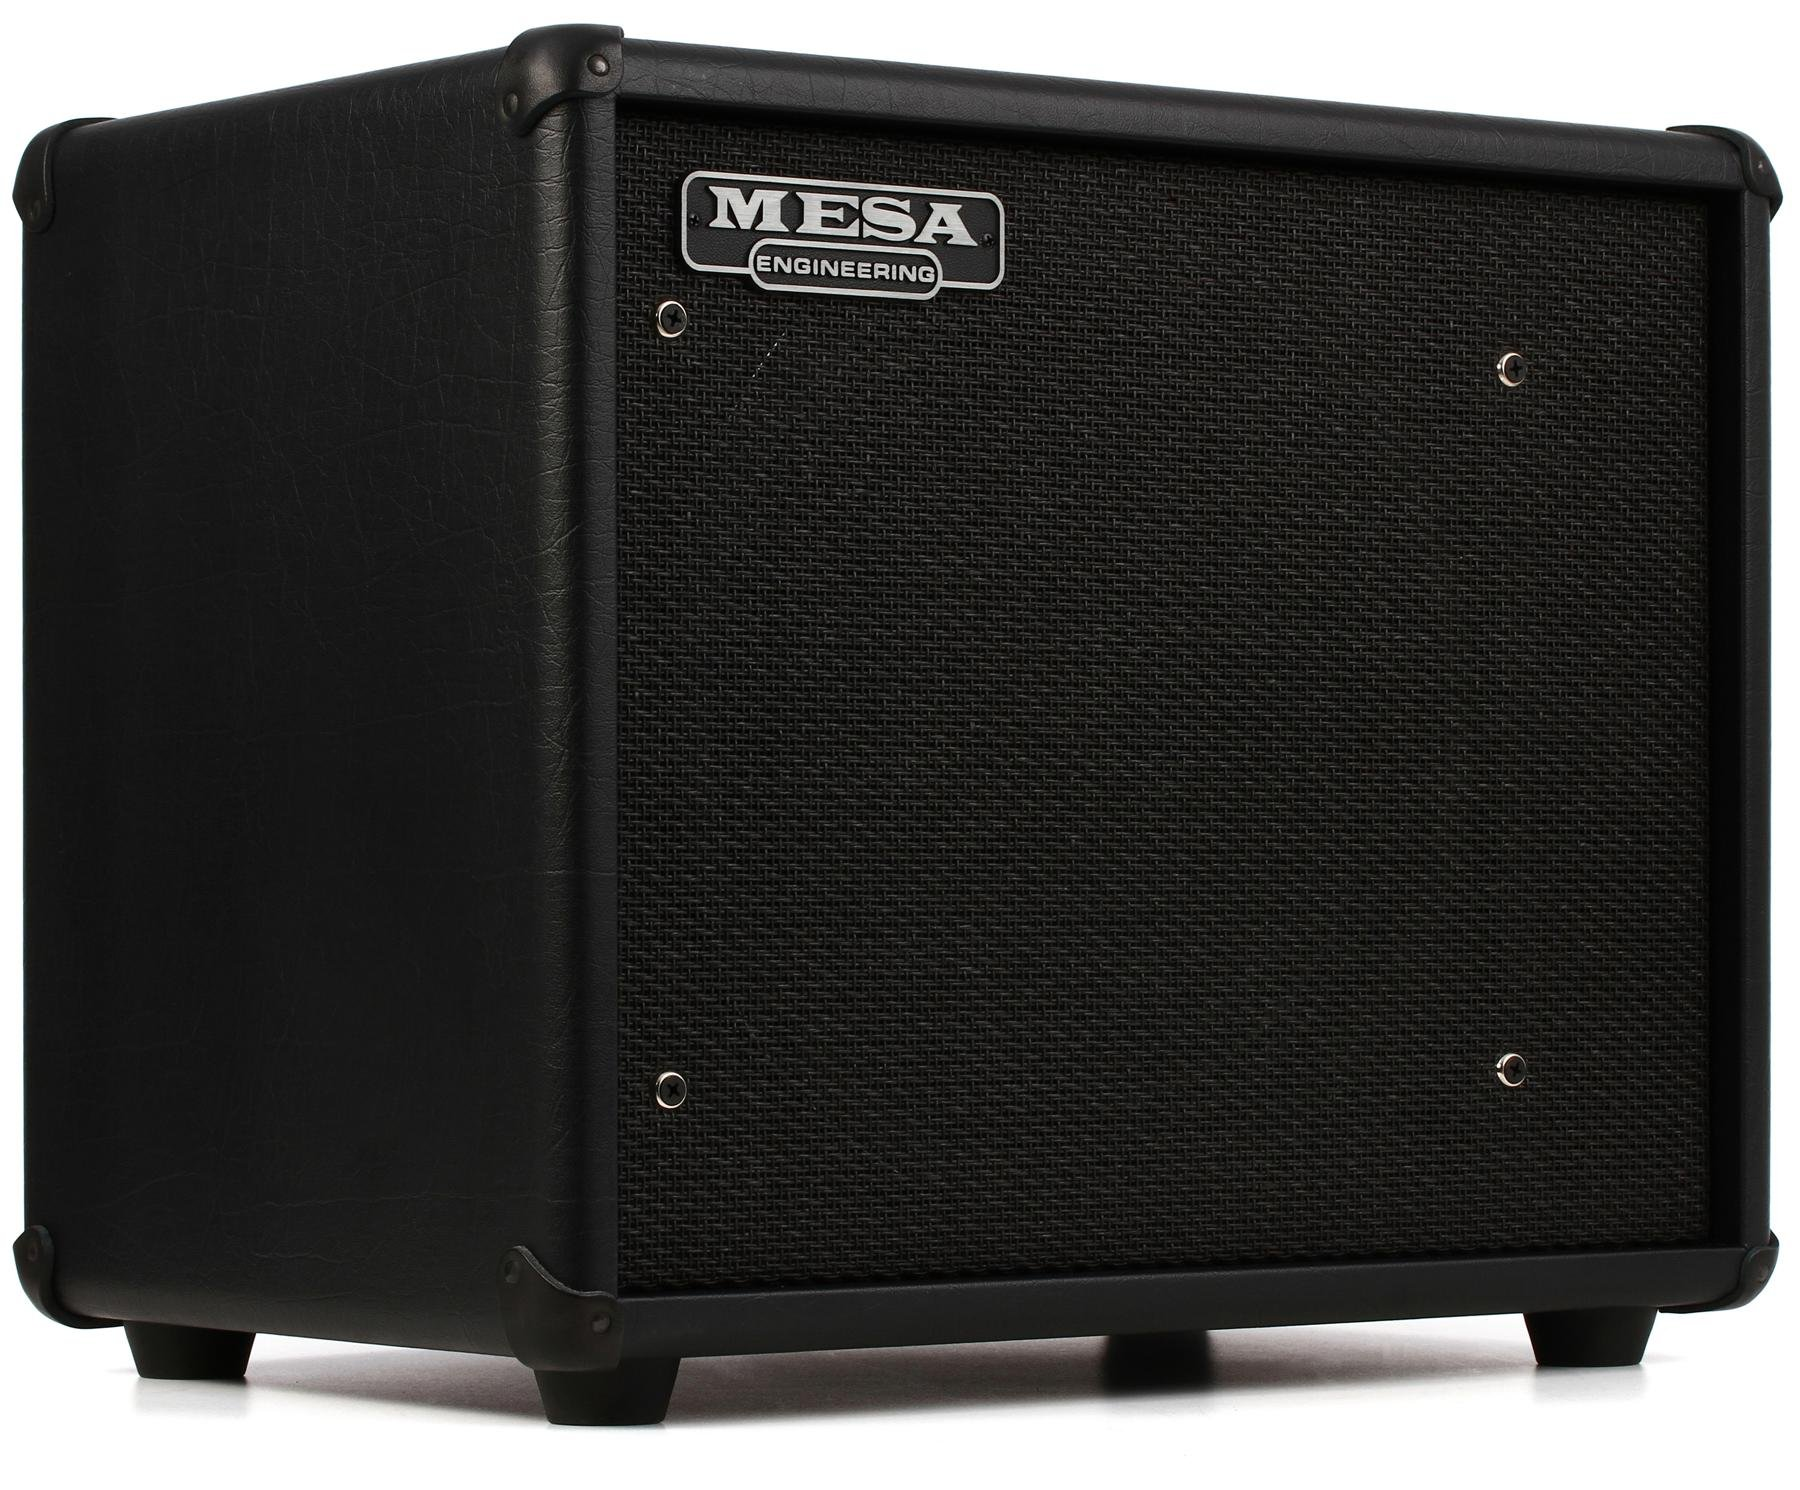 "Mesa Boogie Mark Five 35 35 25 10 watt 1x12"" Tube bo Amp"